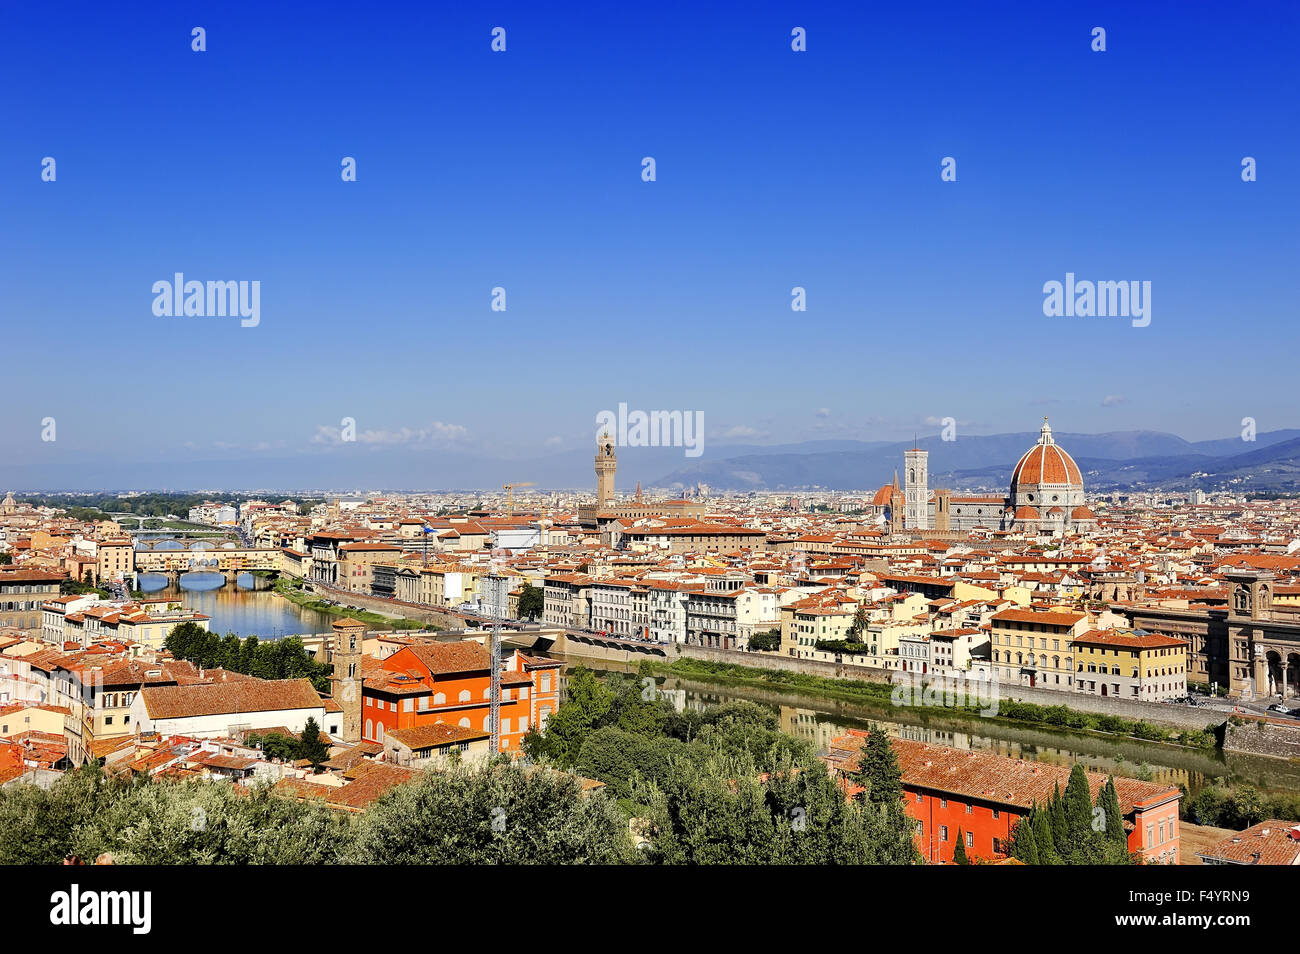 Florence panoramic view from Piazzale Michelangelo, Tuscany, Italy - Stock Image